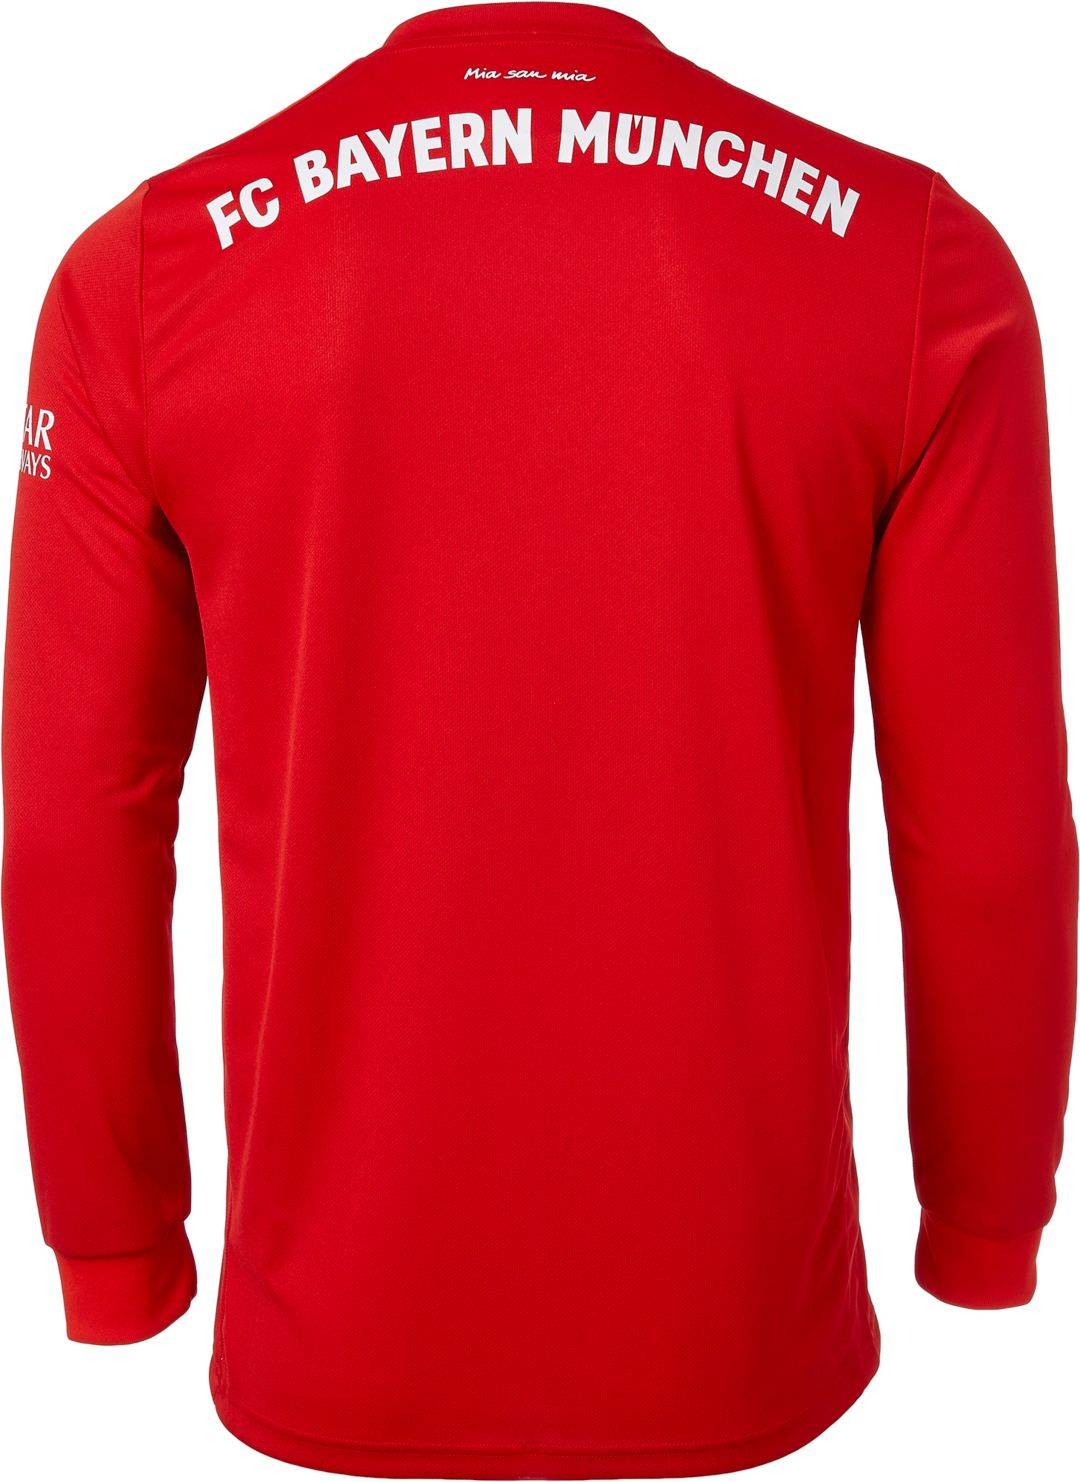 new arrival ea436 fb3ee adidas Men's Bayern Munich '19 Stadium Home Replica Long Sleeve Jersey